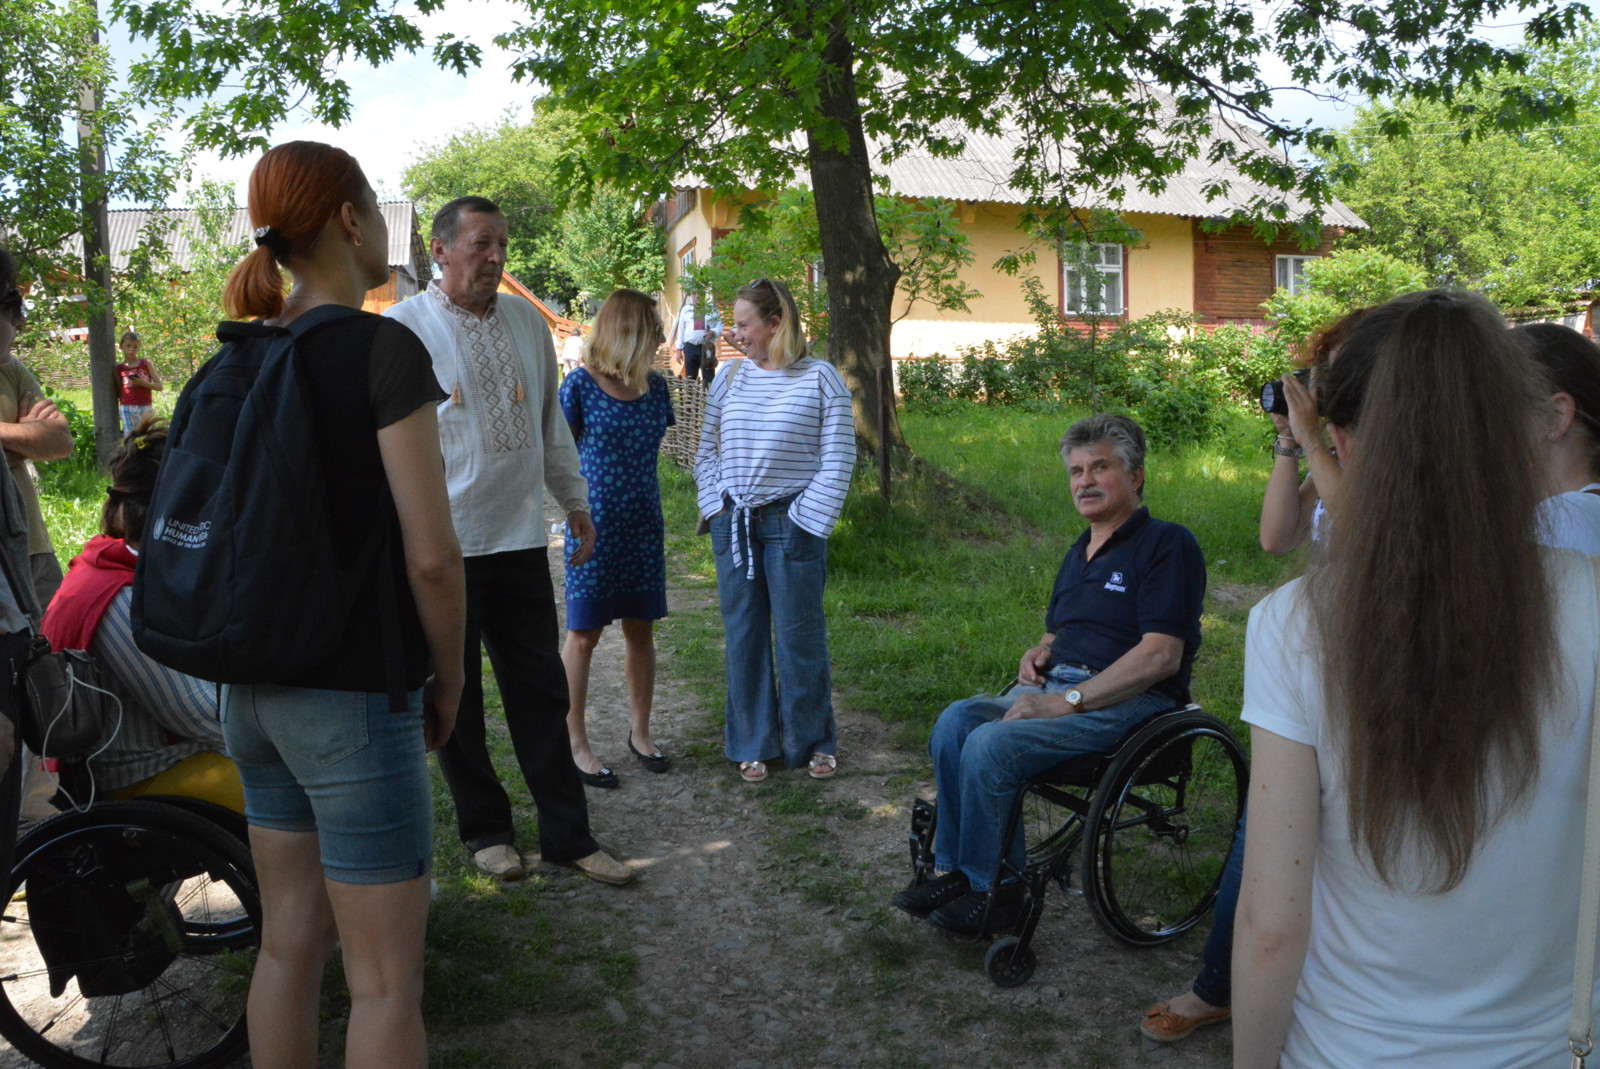 Participants are visiting rural guesthouse